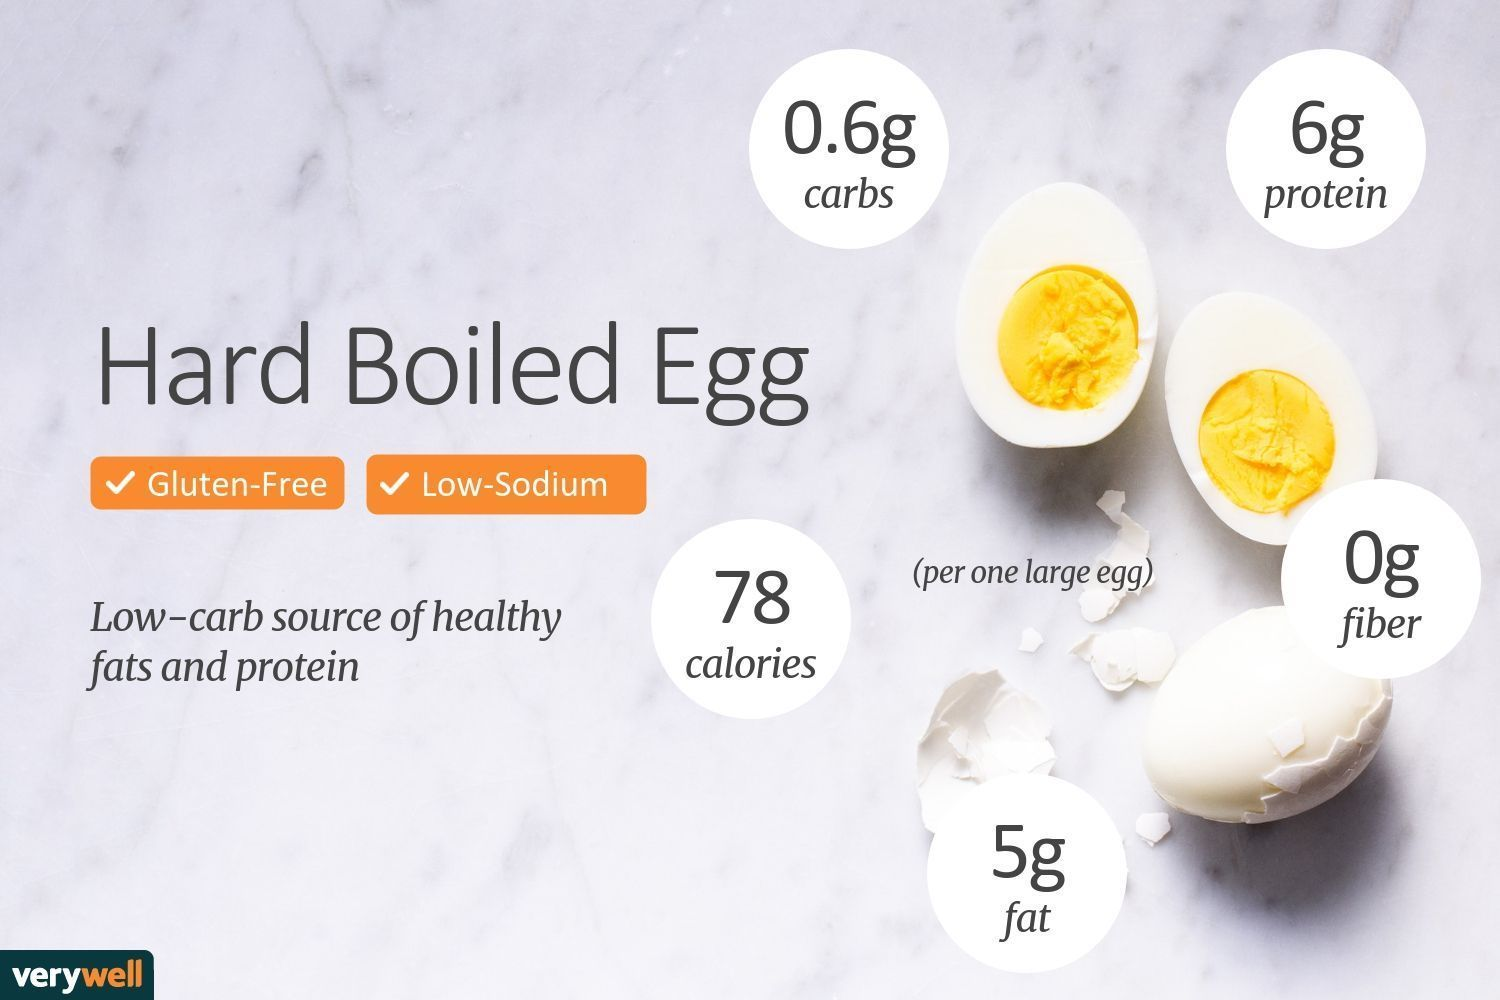 Where Are The Calories In An Egg Egg Nutrition Depends On Preparation Compare Egg Nutri Benefits Of Eating Eggs Hard Boiled Eggs Calories Egg Nutrition Facts